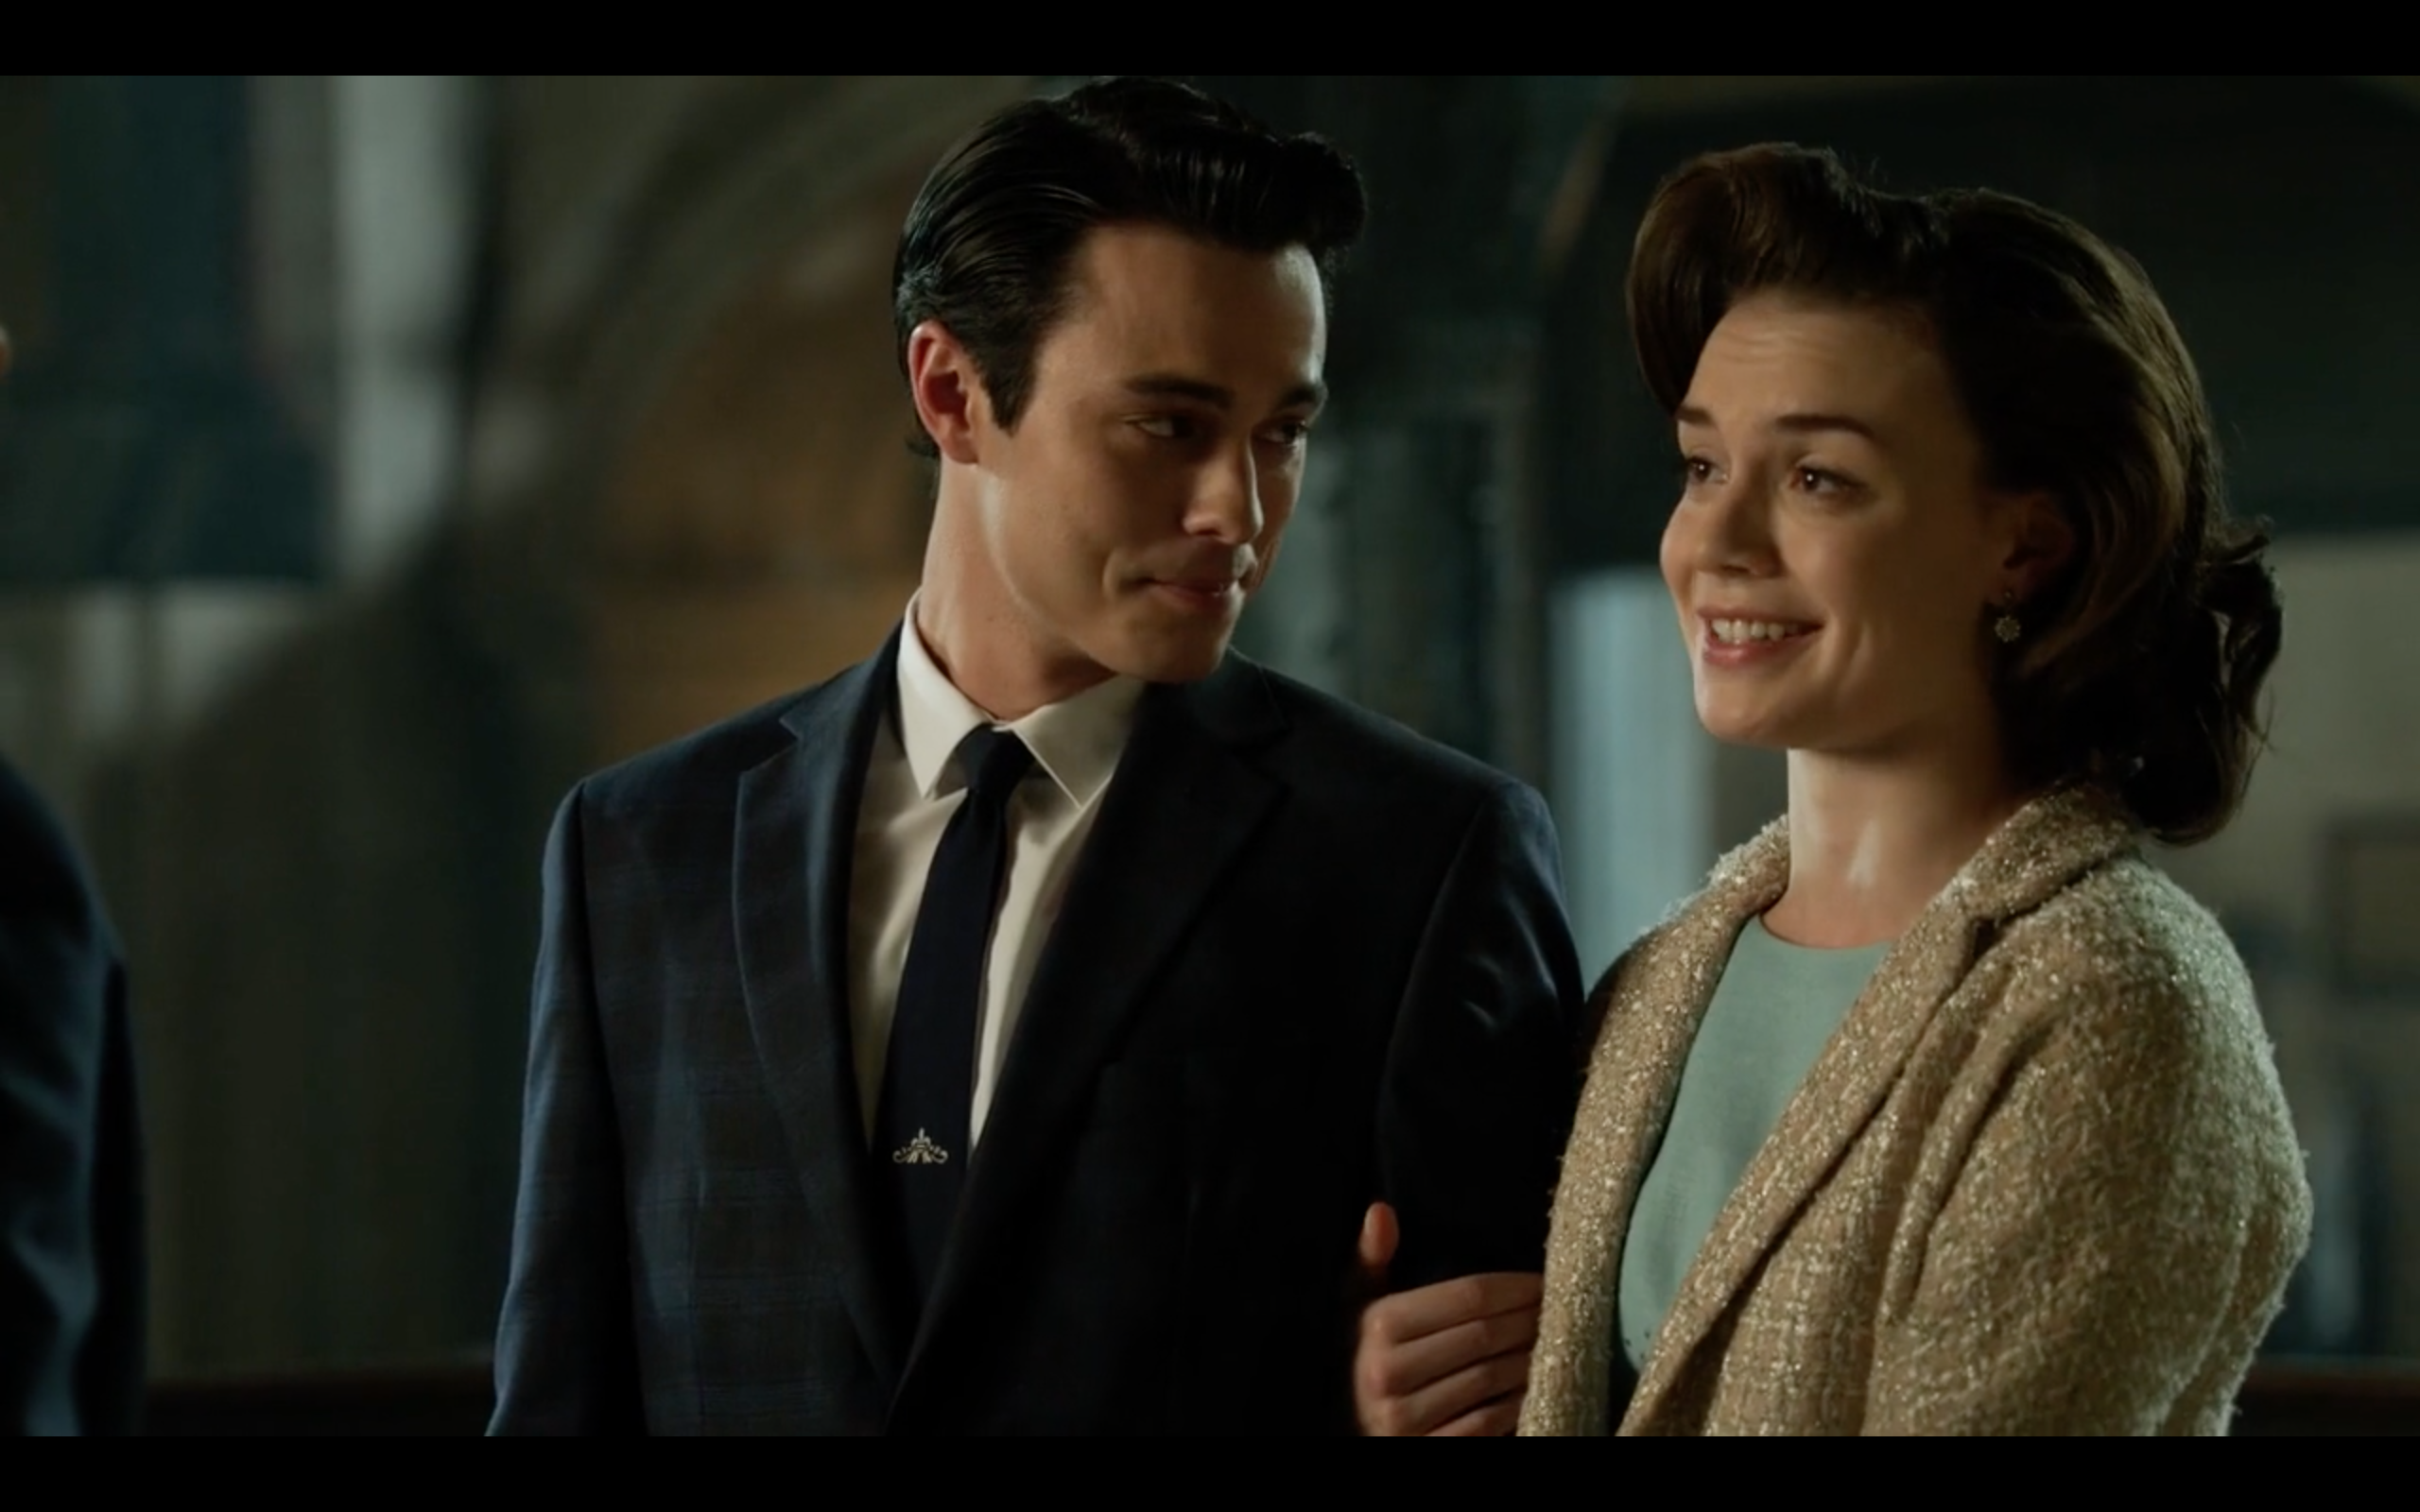 Robert Gorrie as John Grayson and Abbi Snee as Mary Lloyd in 'Gotham'